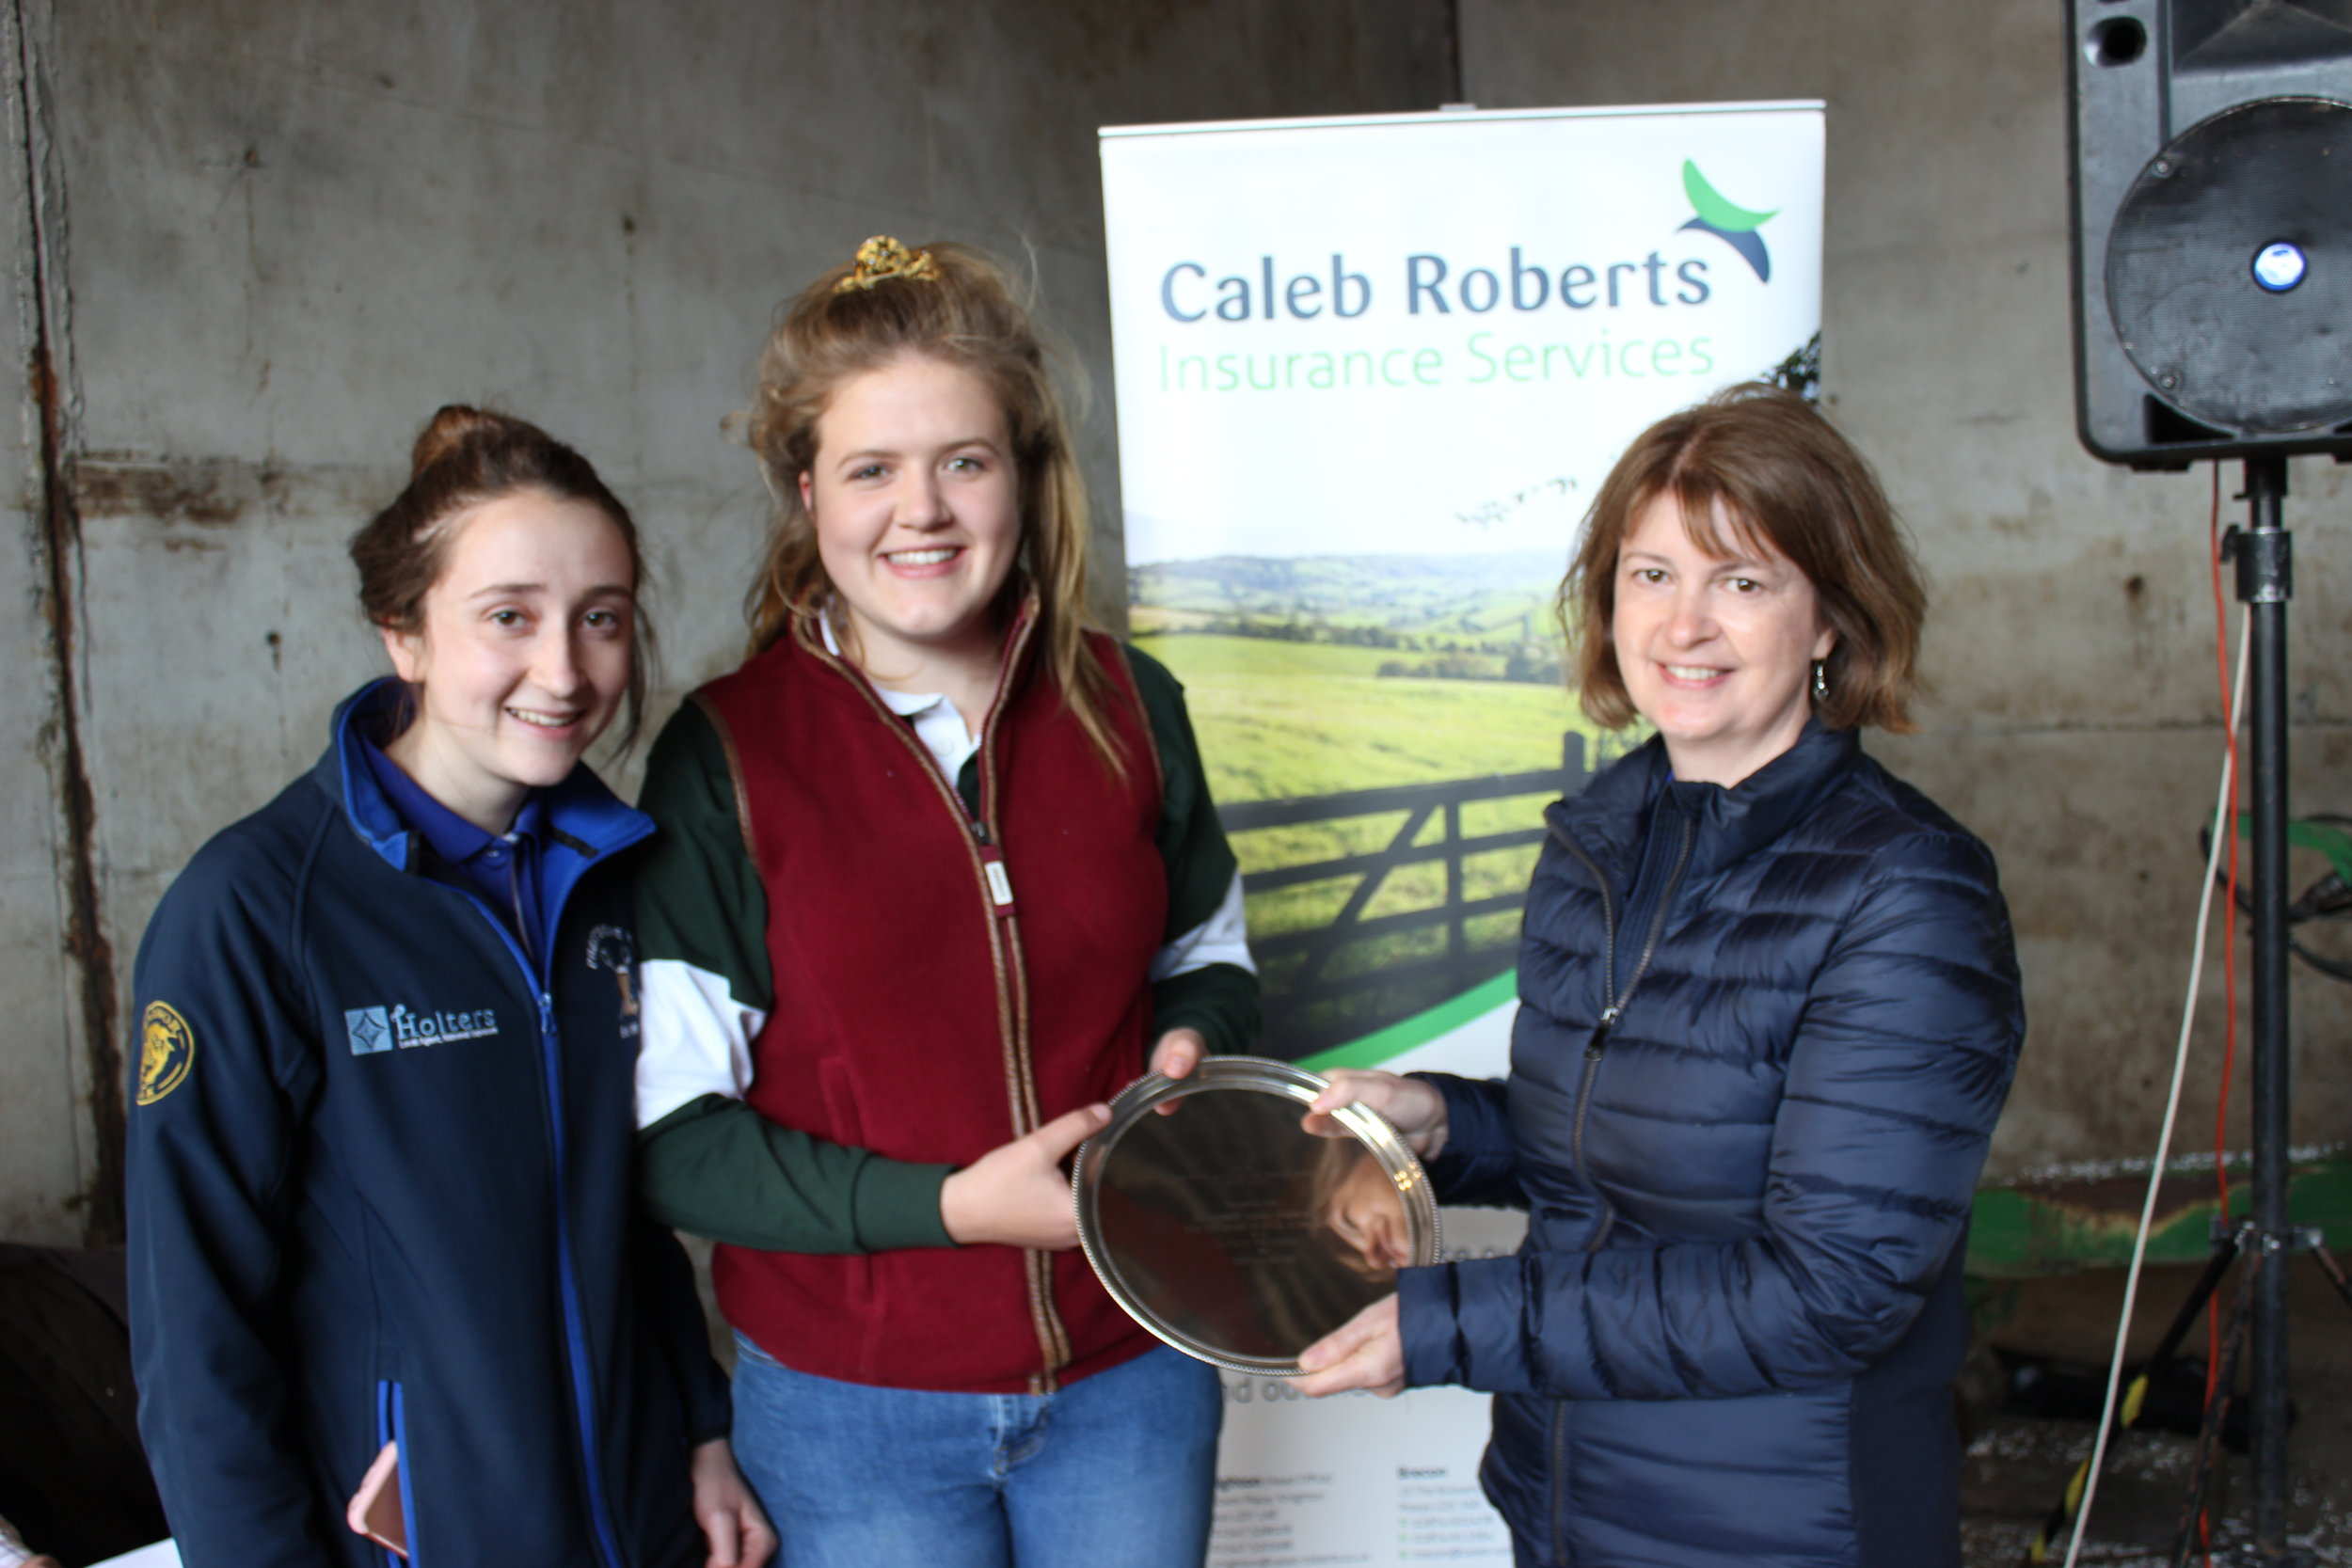 Sally Griffiths, Presteigne YFC - Sarah Froggatt Trophy for highest mark in Stockjudging Competitions.